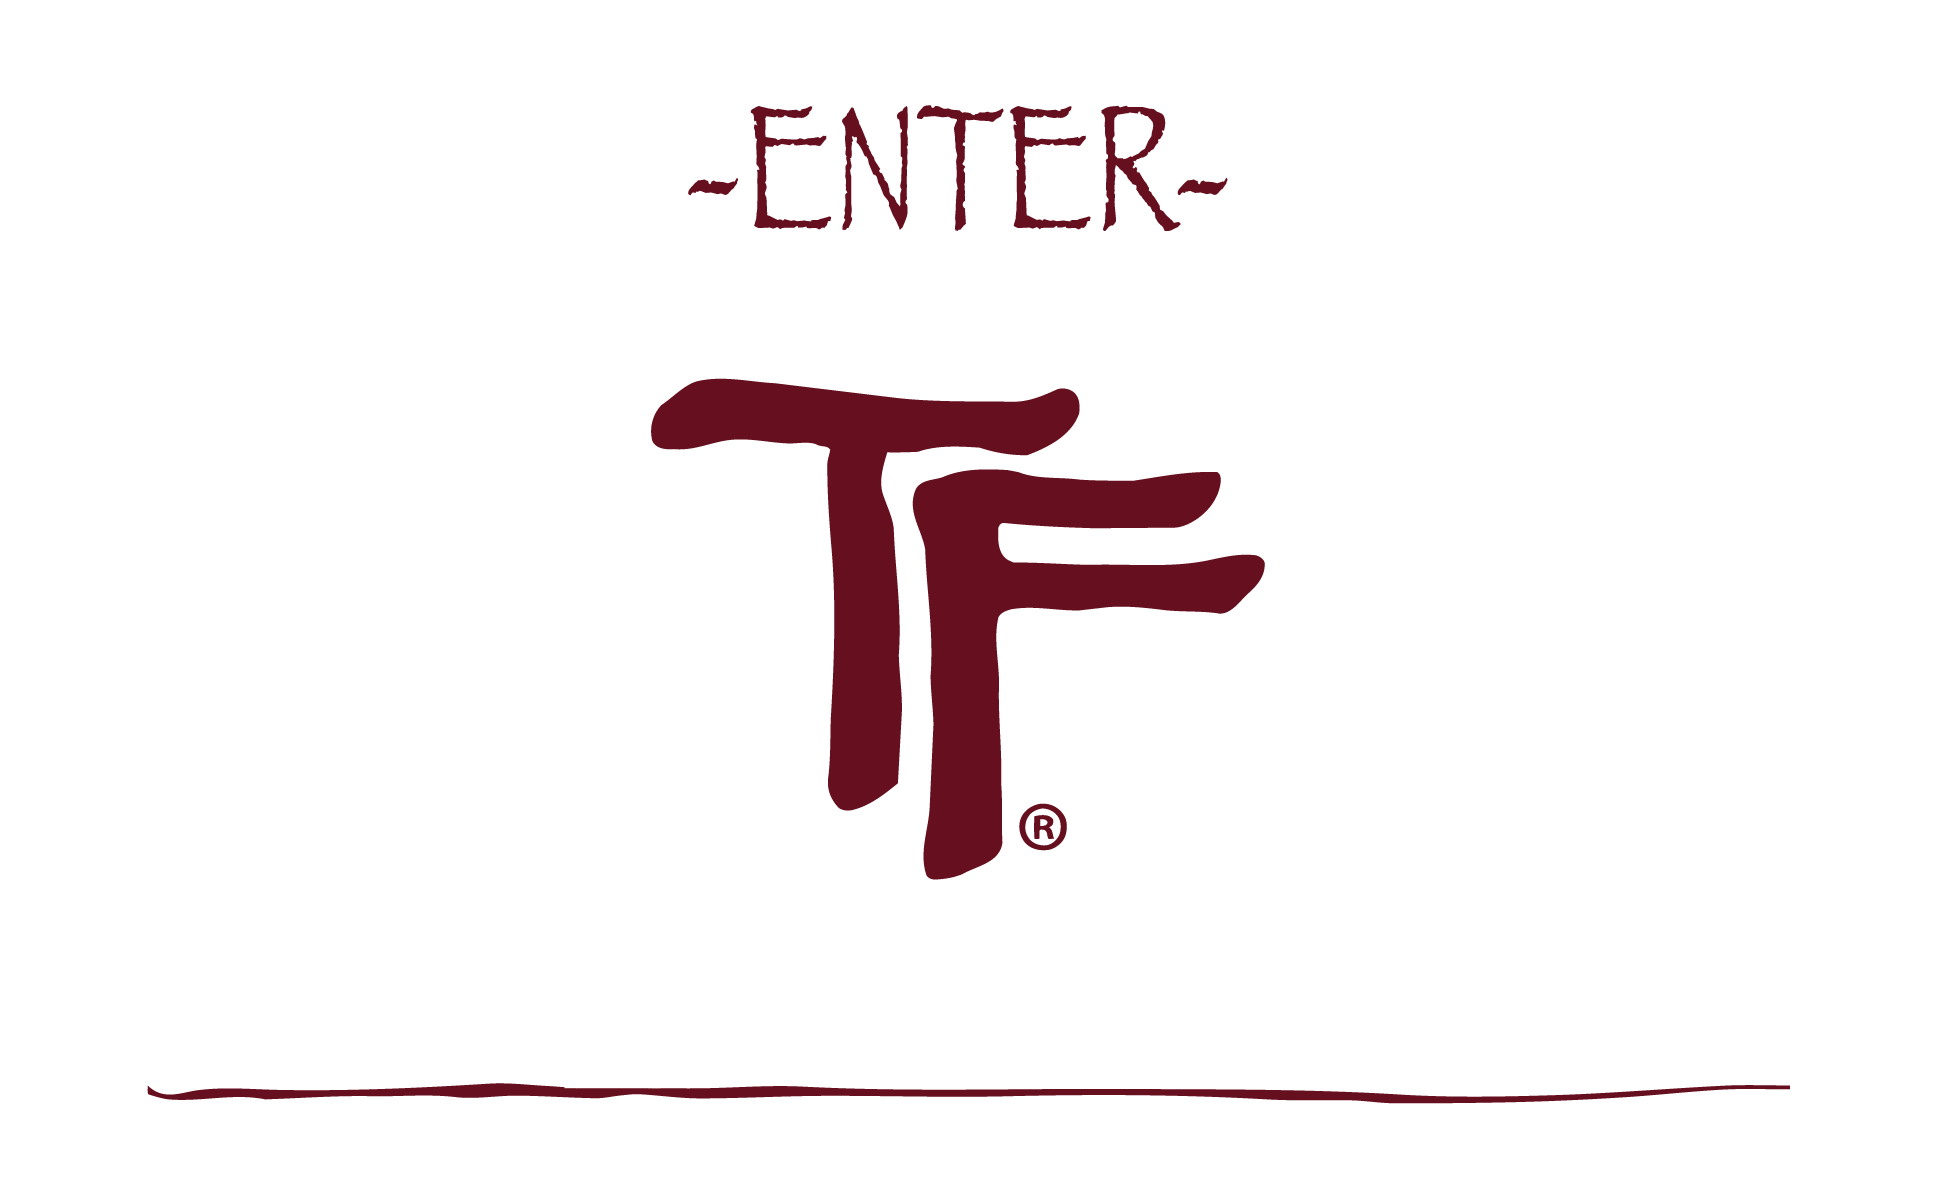 Enter TruFire Restaurant Life Happens in the Kitchen